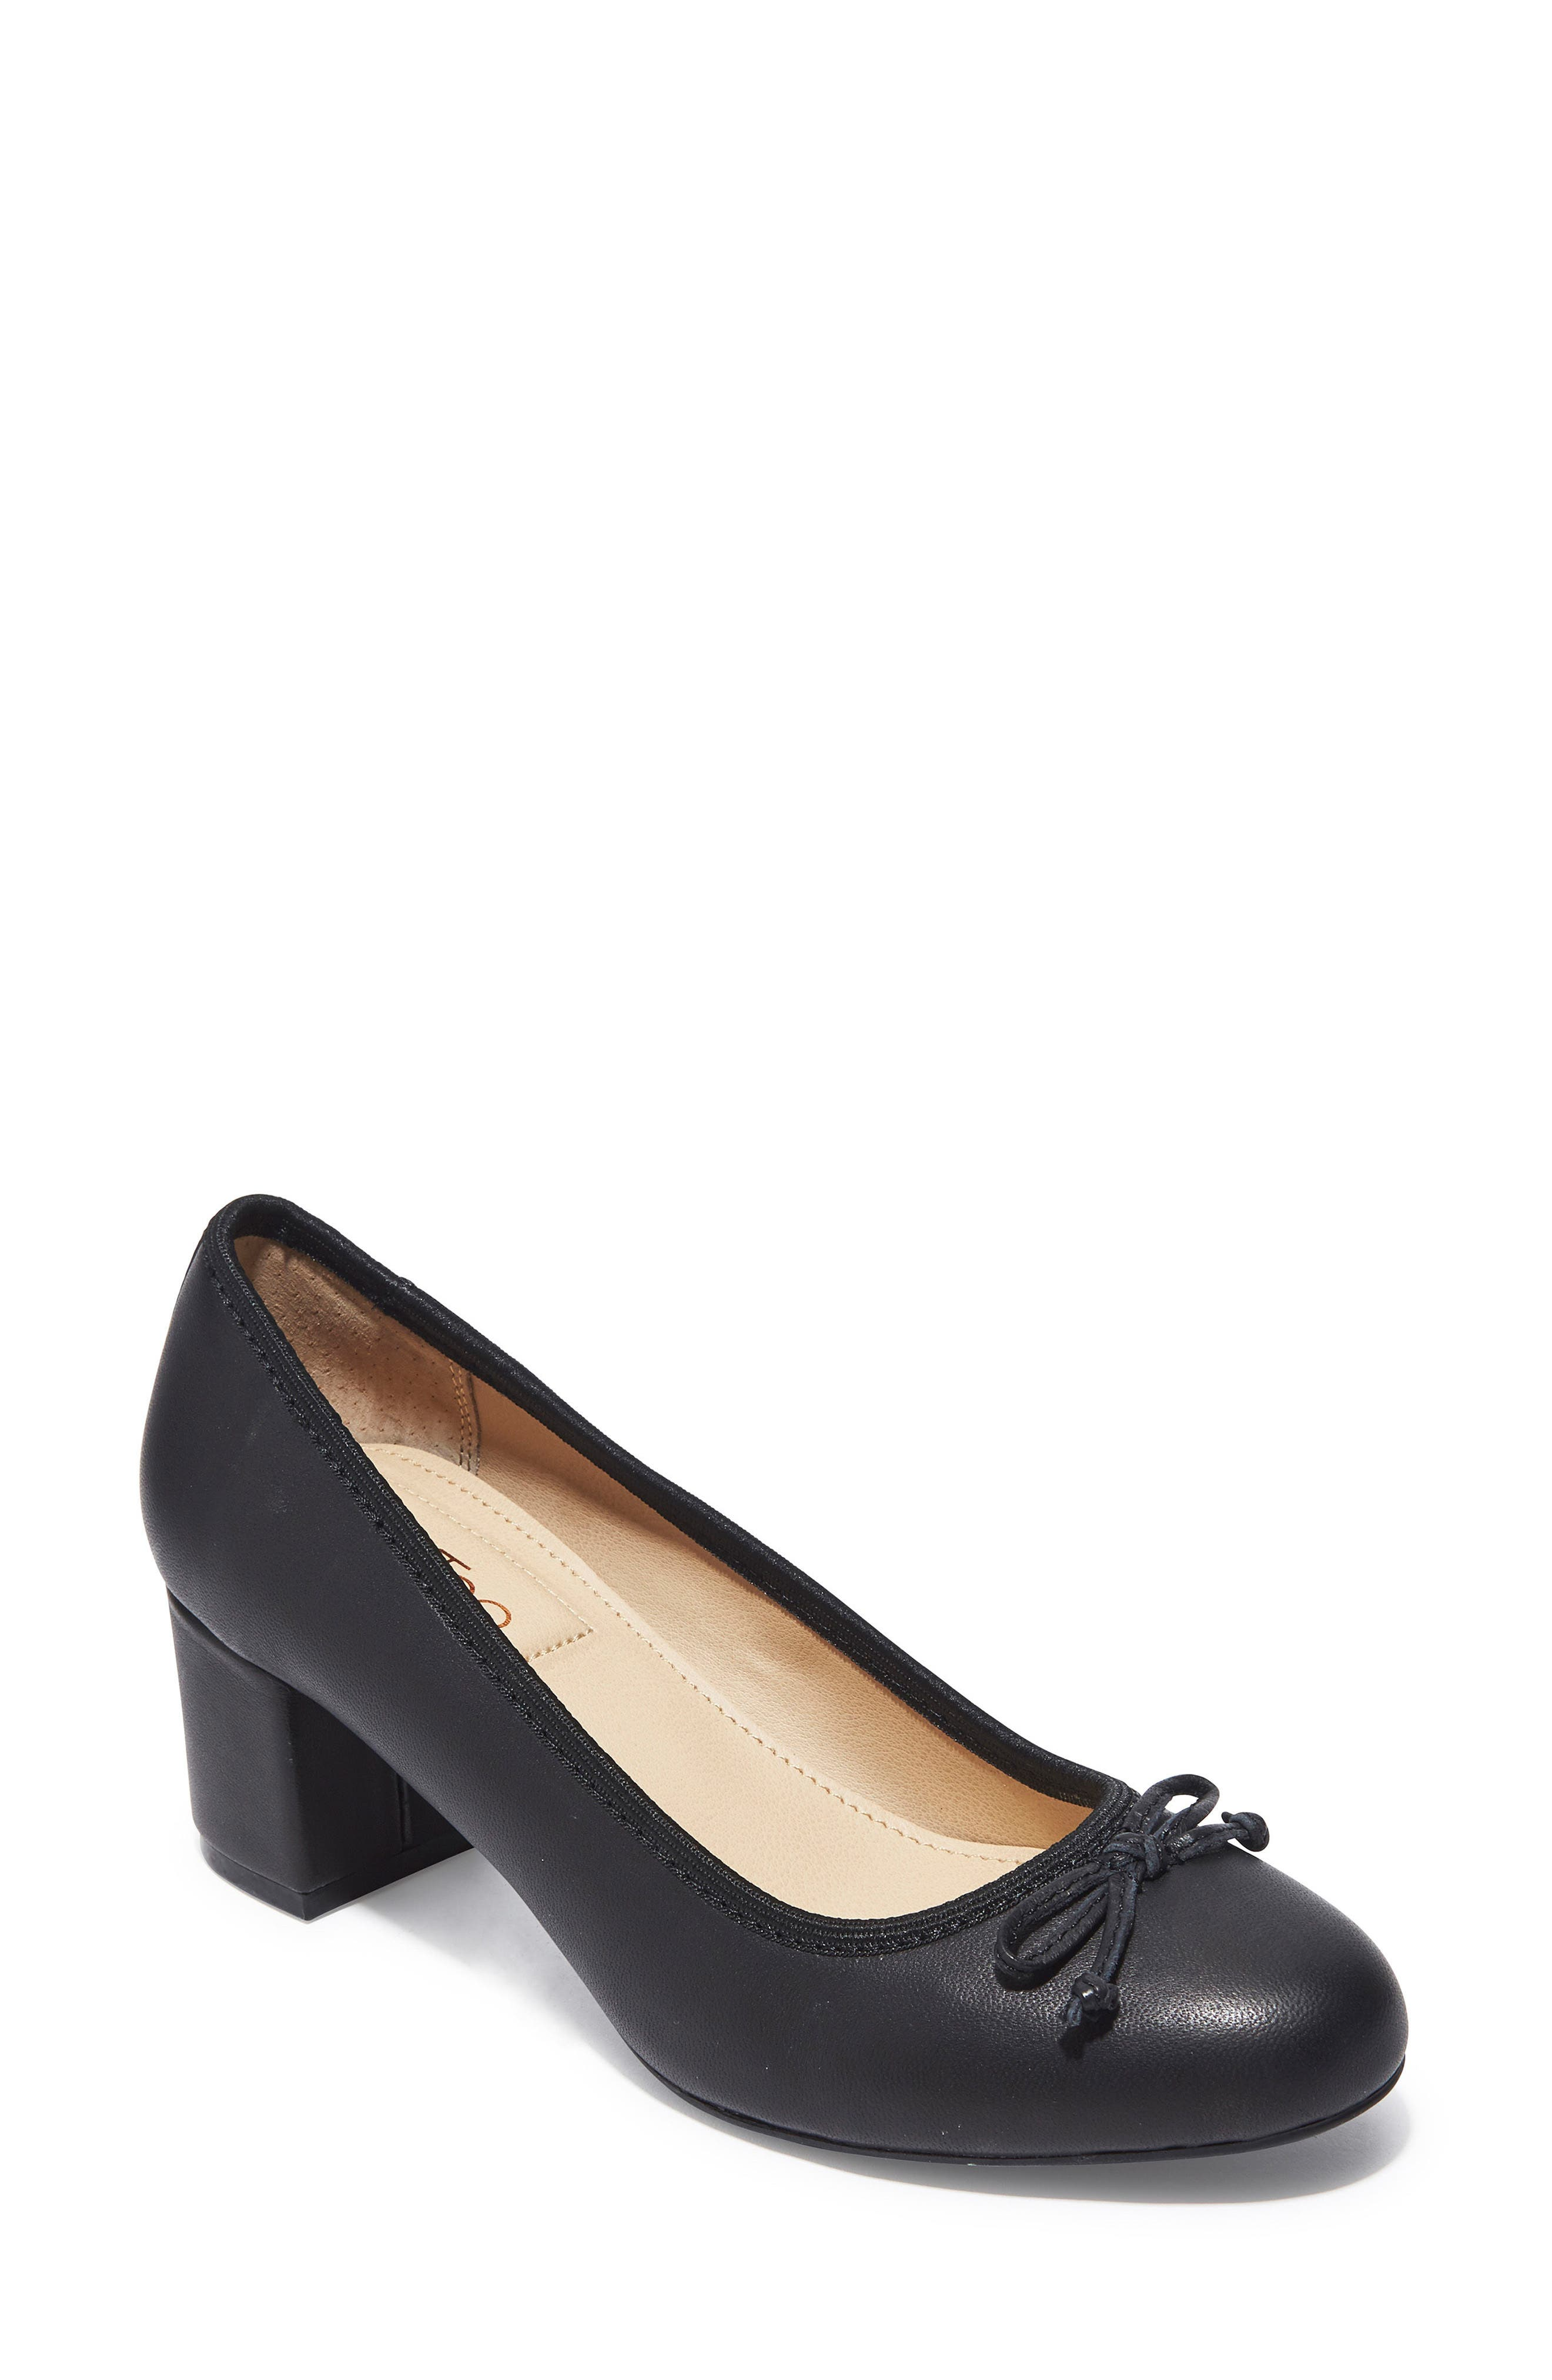 Lily Bow Pump,                         Main,                         color, 001